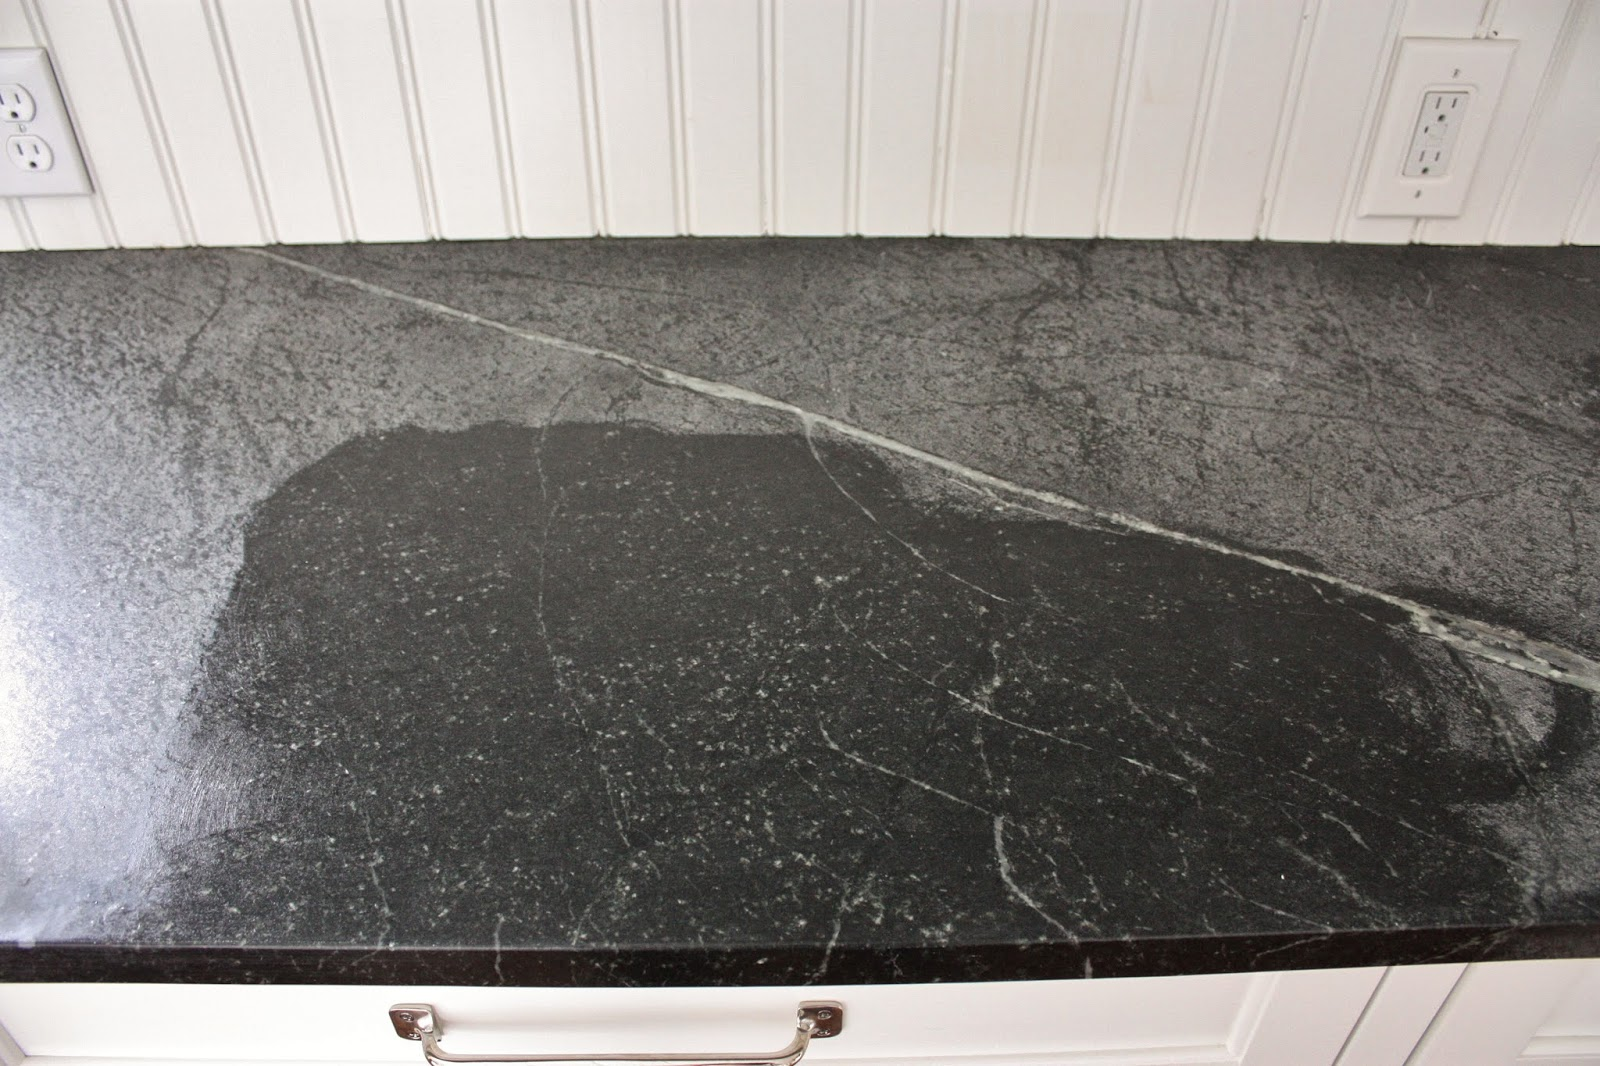 for the of a house: Soapstone... Soapstone Countertops New England on new england slate, new england butcher block, new england tile, new england bamboo, new england tourmaline, new england brick, new england brass, new england stoneware, new england quartz, new england wood, new england sand, new england silver, new england silica, new england stucco, new england copper,